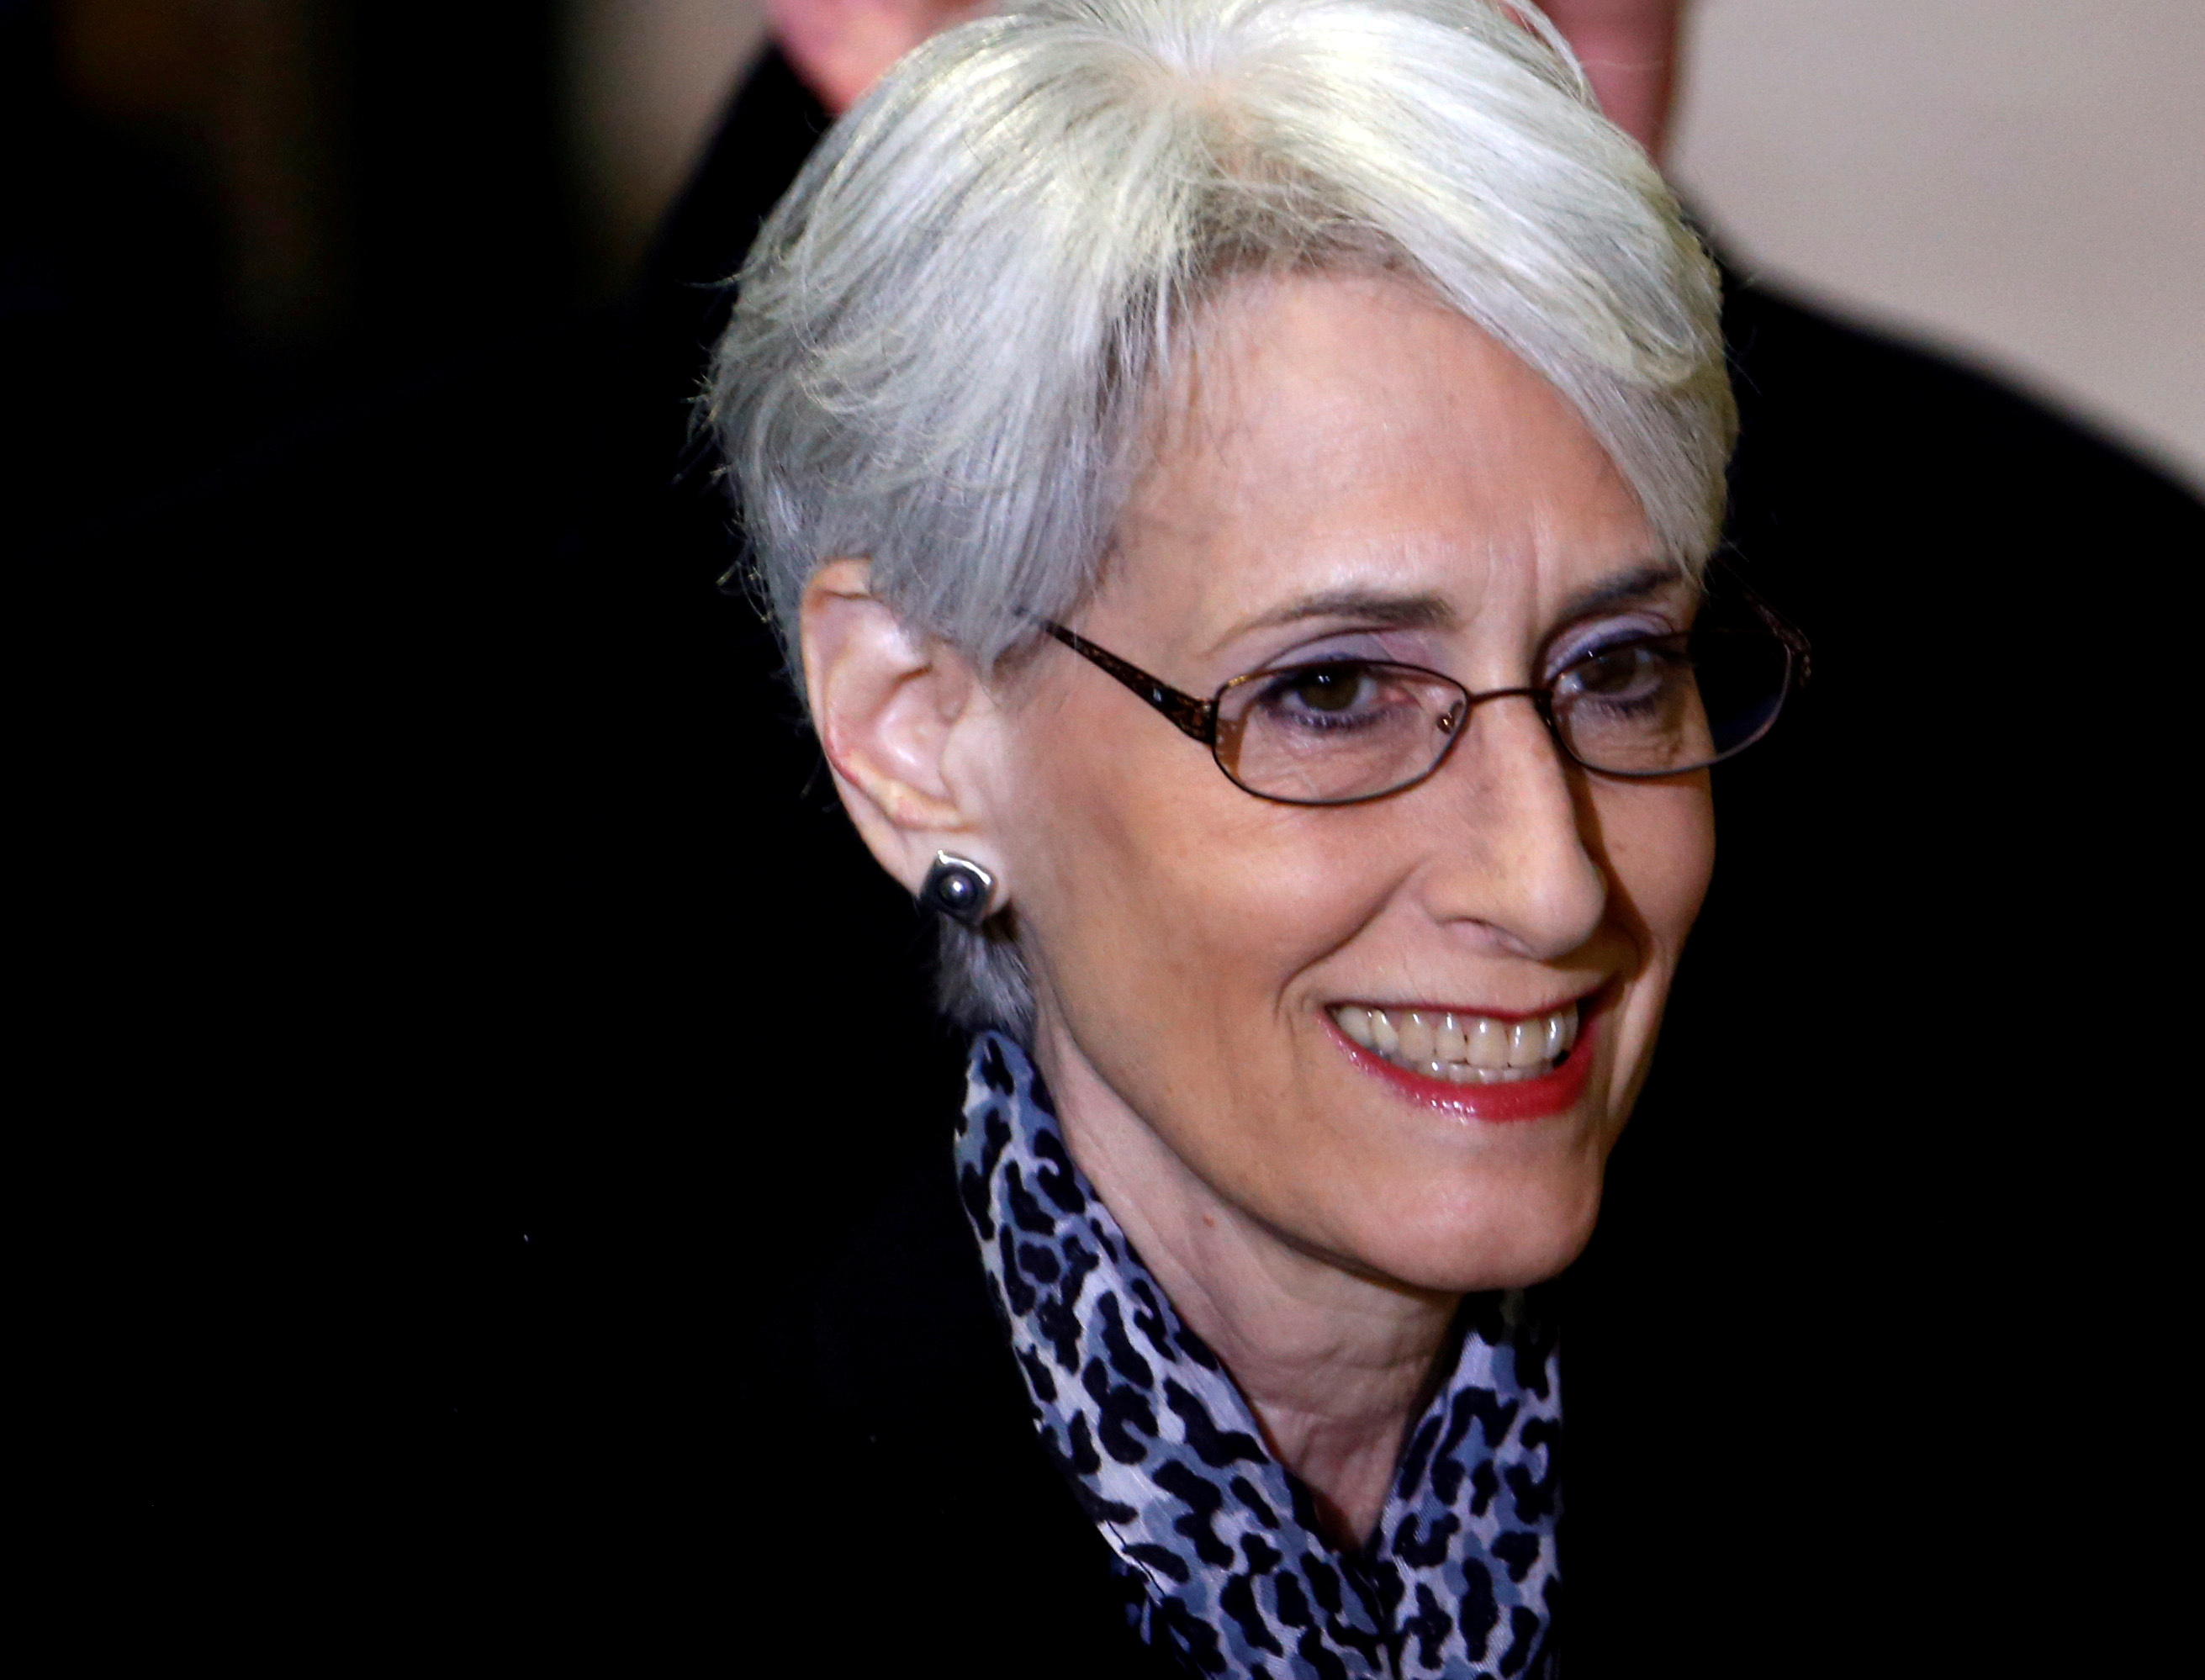 Wendy Sherman arrives for a meeting on Syria at the United Nations European headquarters in Geneva February 13, 2014.    REUTERS/Denis Balibouse/File Photo